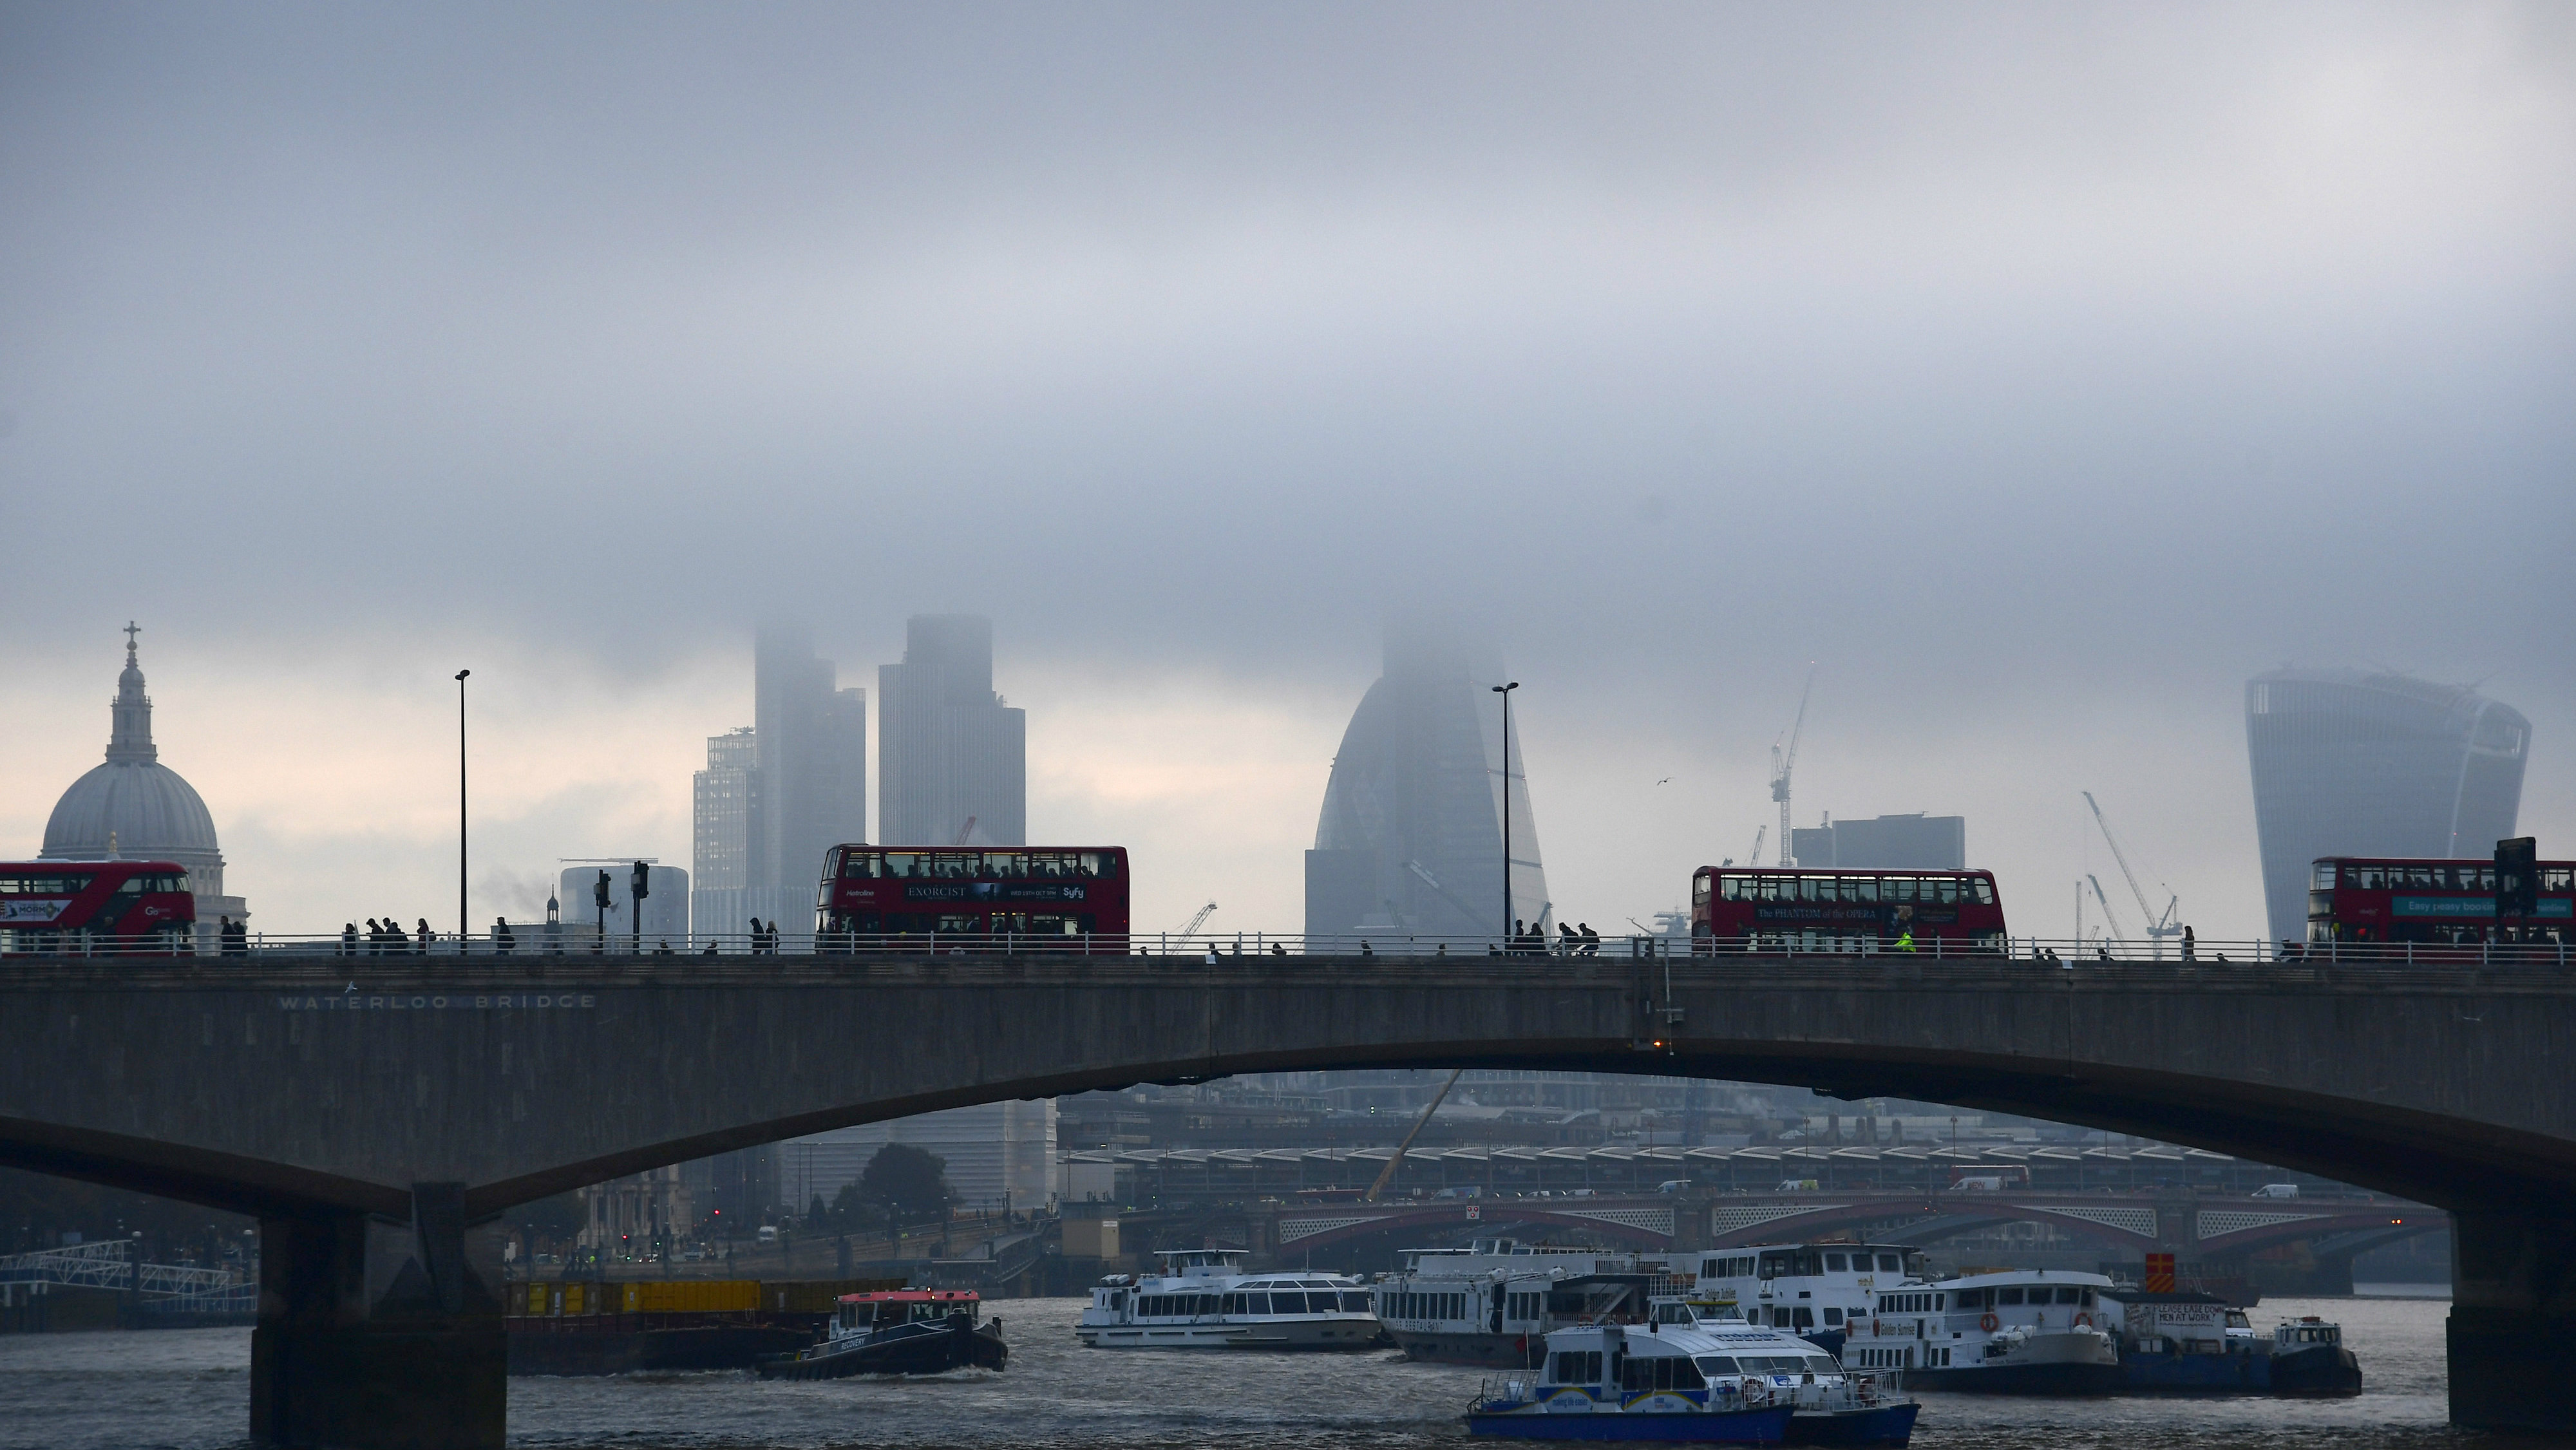 City workers cross the River Thames with the City of London financial district seen behind in London, in Britain October 27, 2016